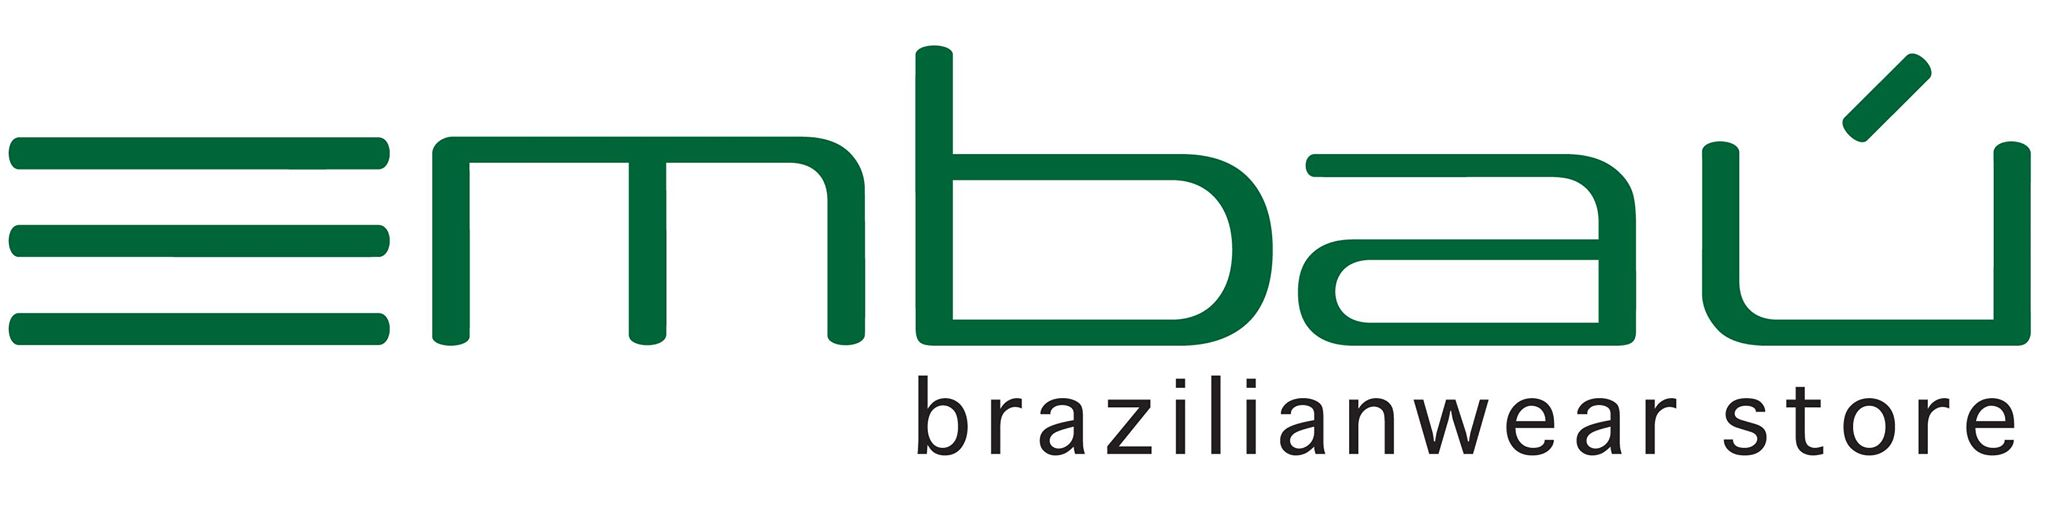 Embaú Brazilianwear Store